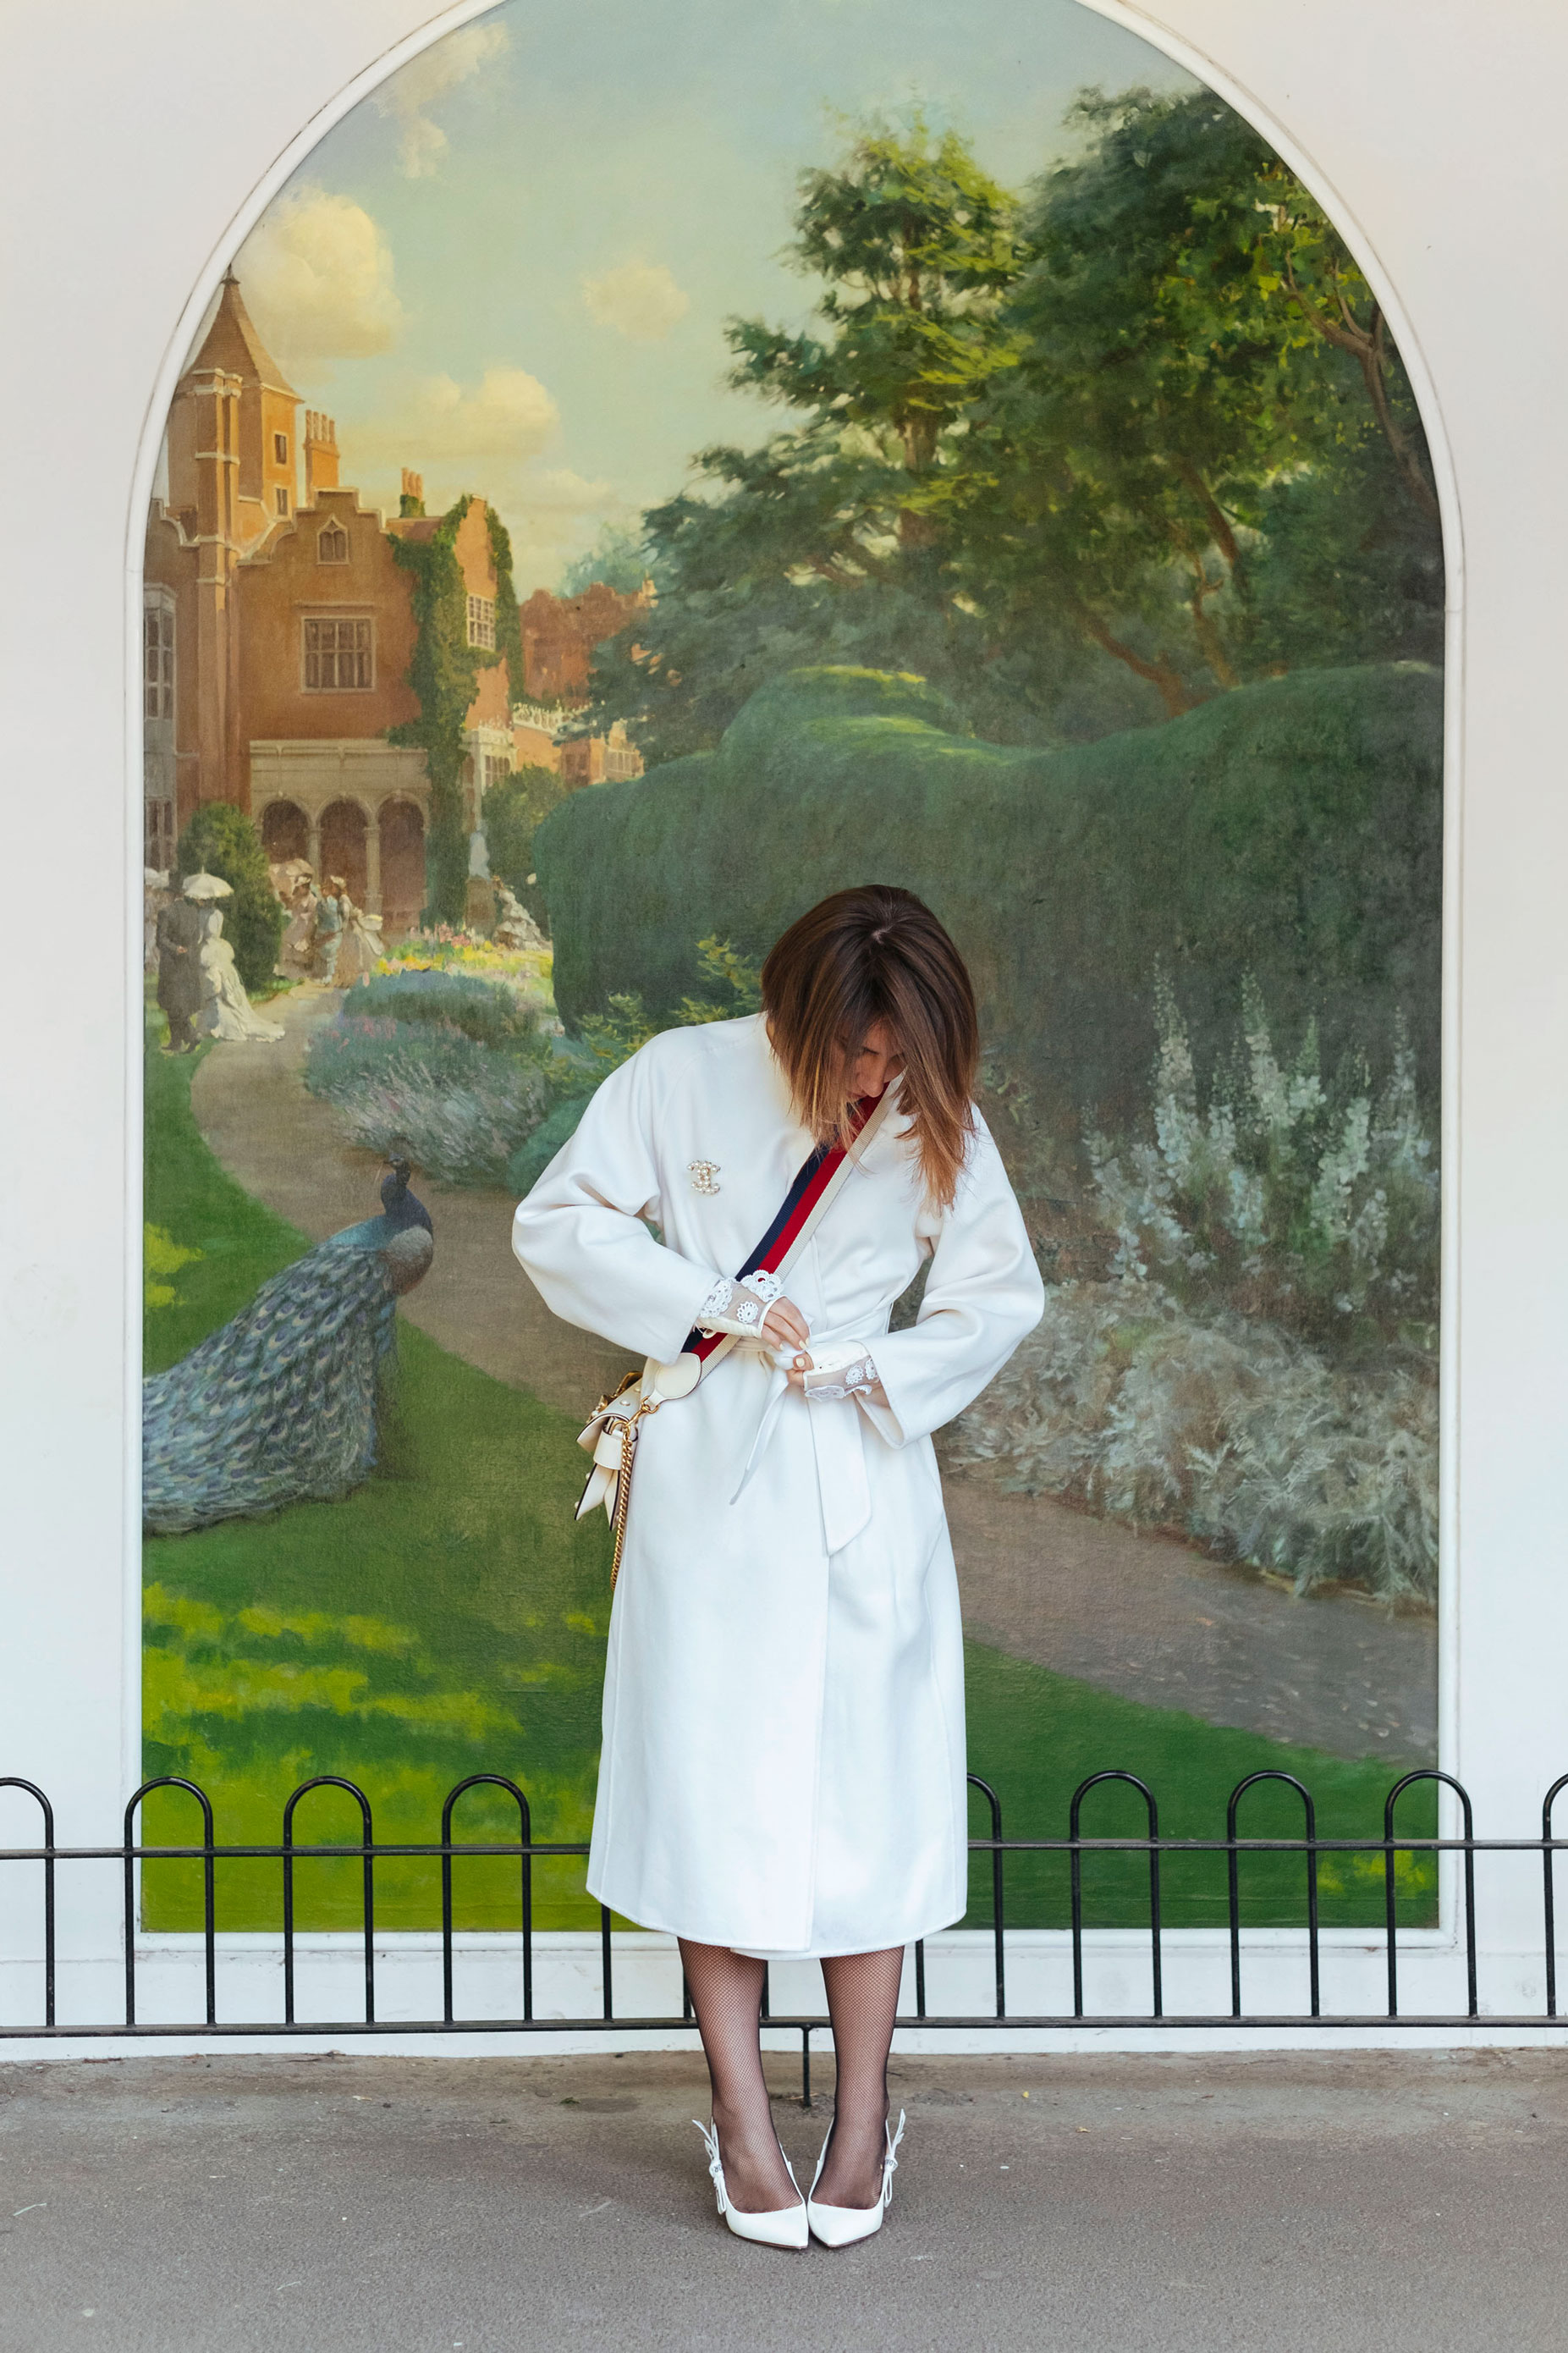 7 More Minutes. Fashion, travel and lifestyle blog by Alyona Gasimova. The Power Of White. 7 Reasons To Buy A White Coat Right Now. Max Mara. www.7moreminutes.com